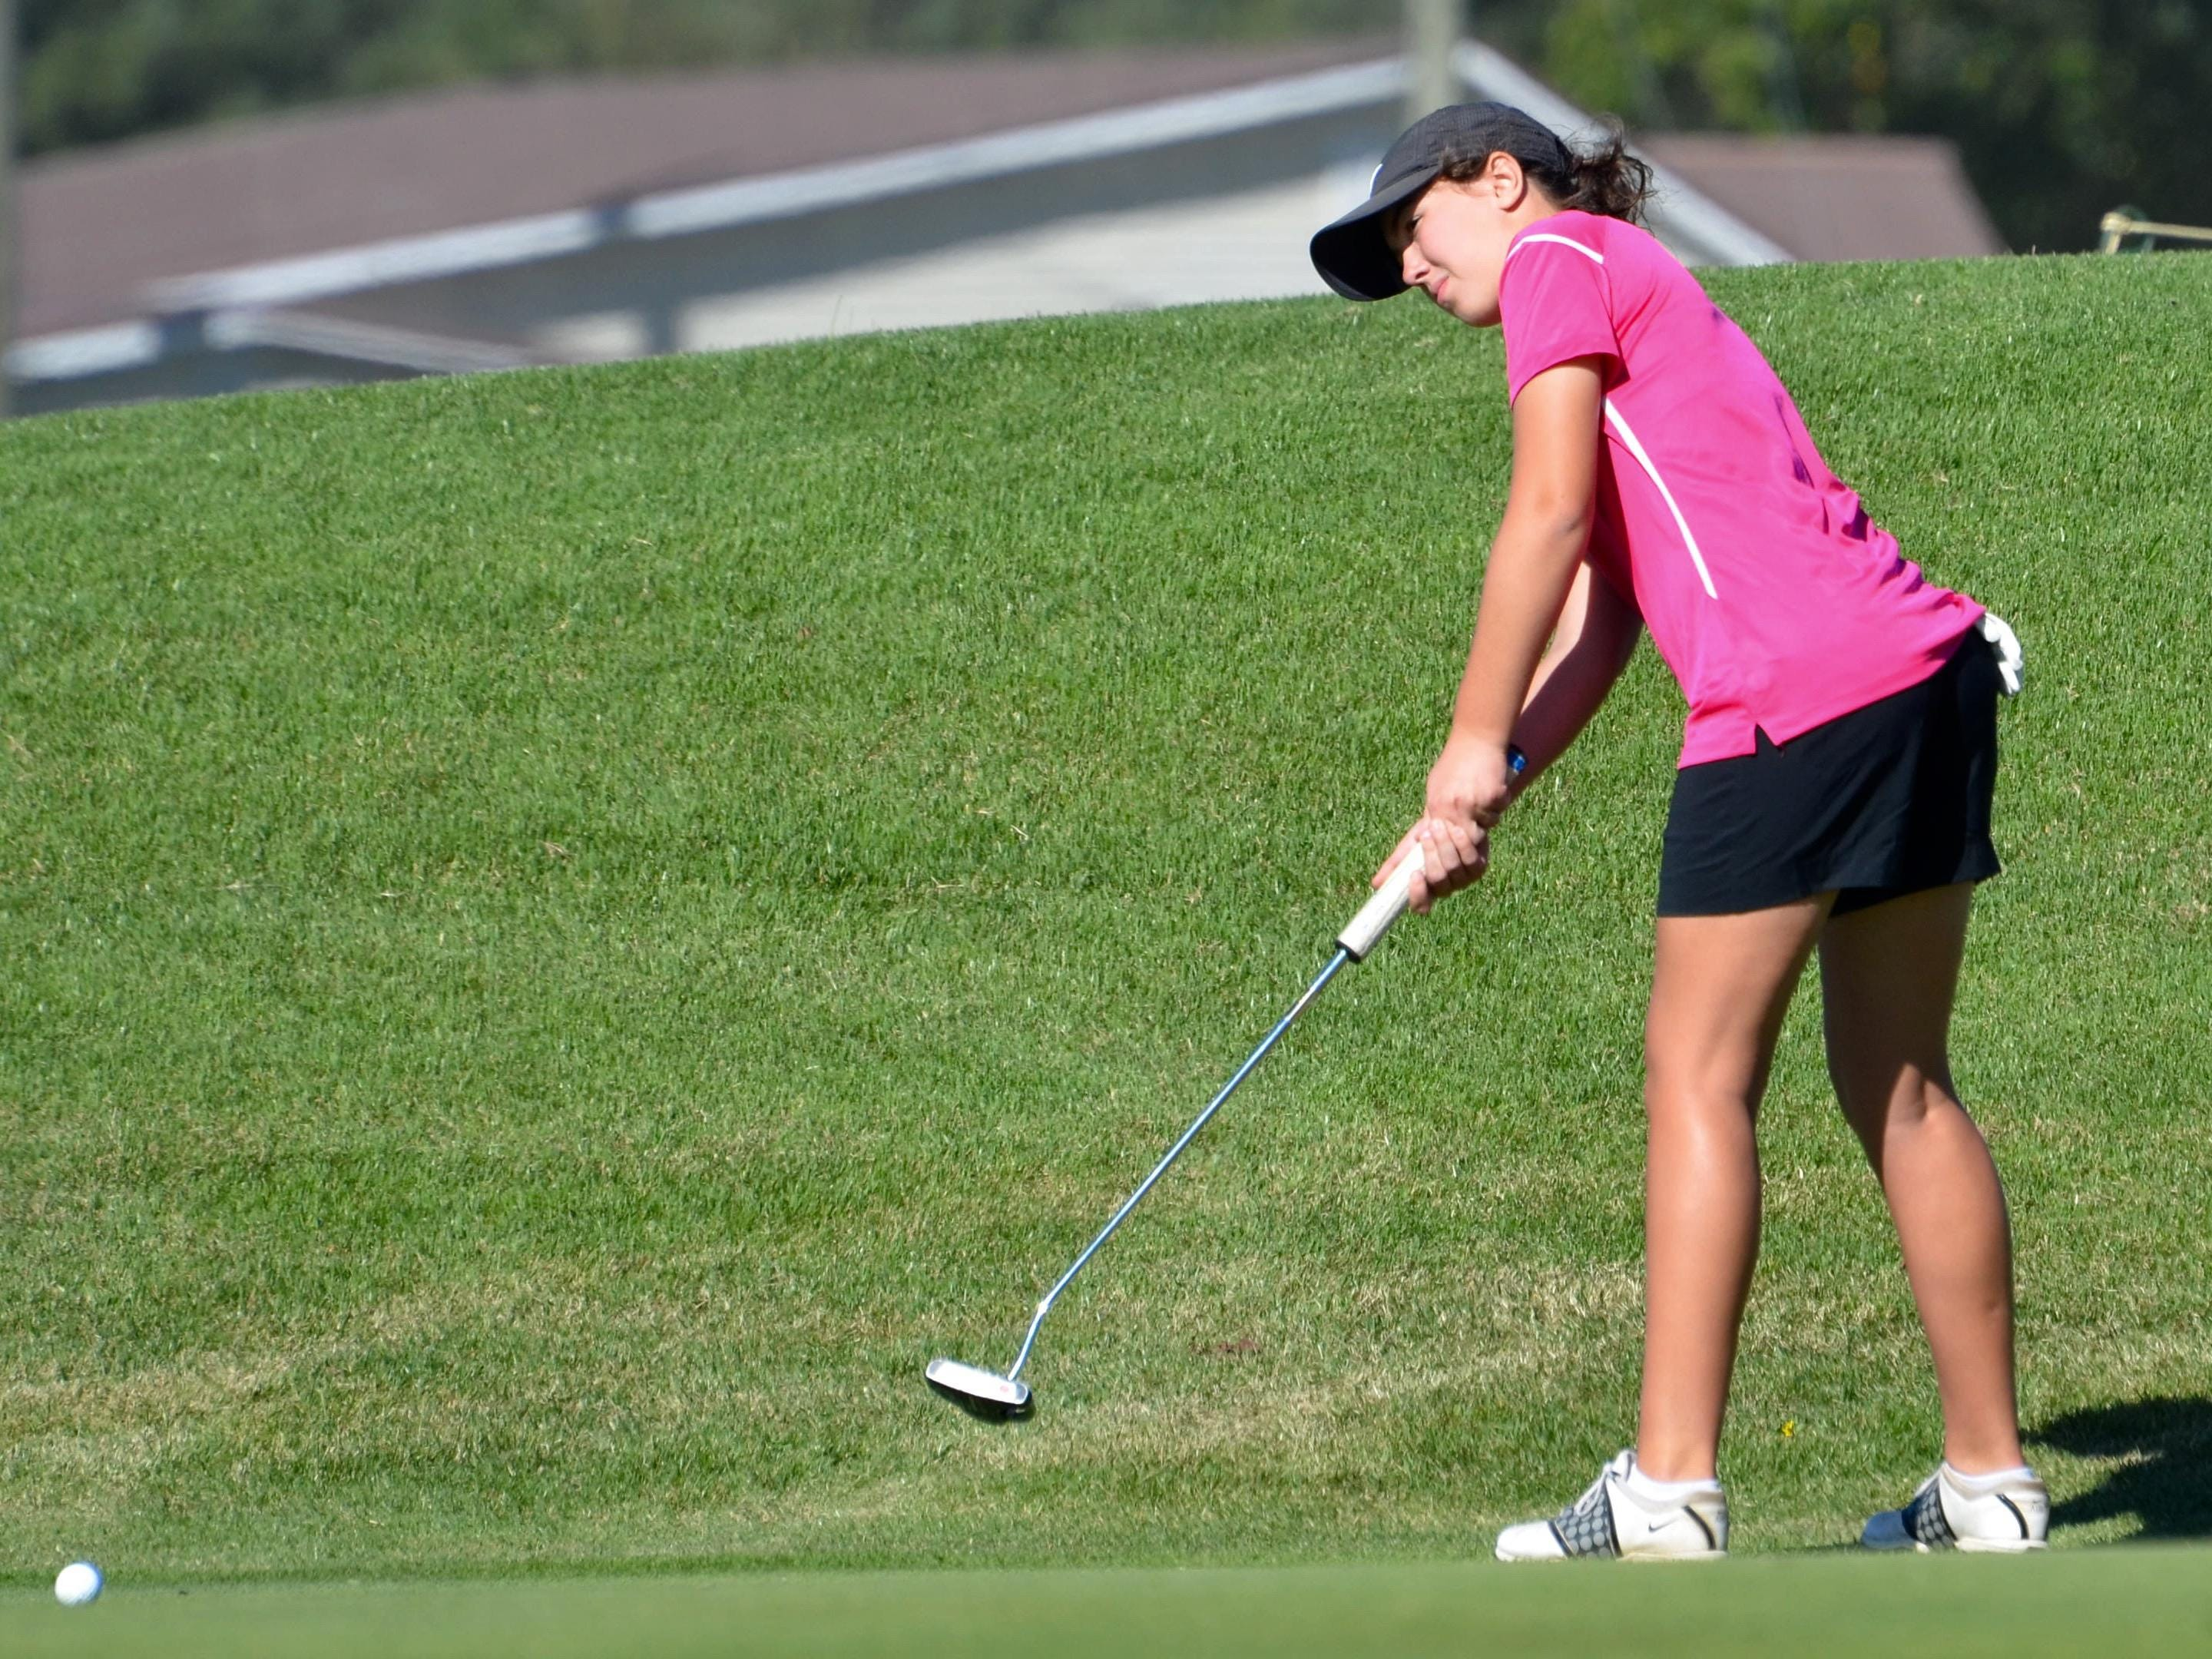 Central Magnet's Delaney Sain competed in her first TSSAA Class A/AA state tournament Tuesday.